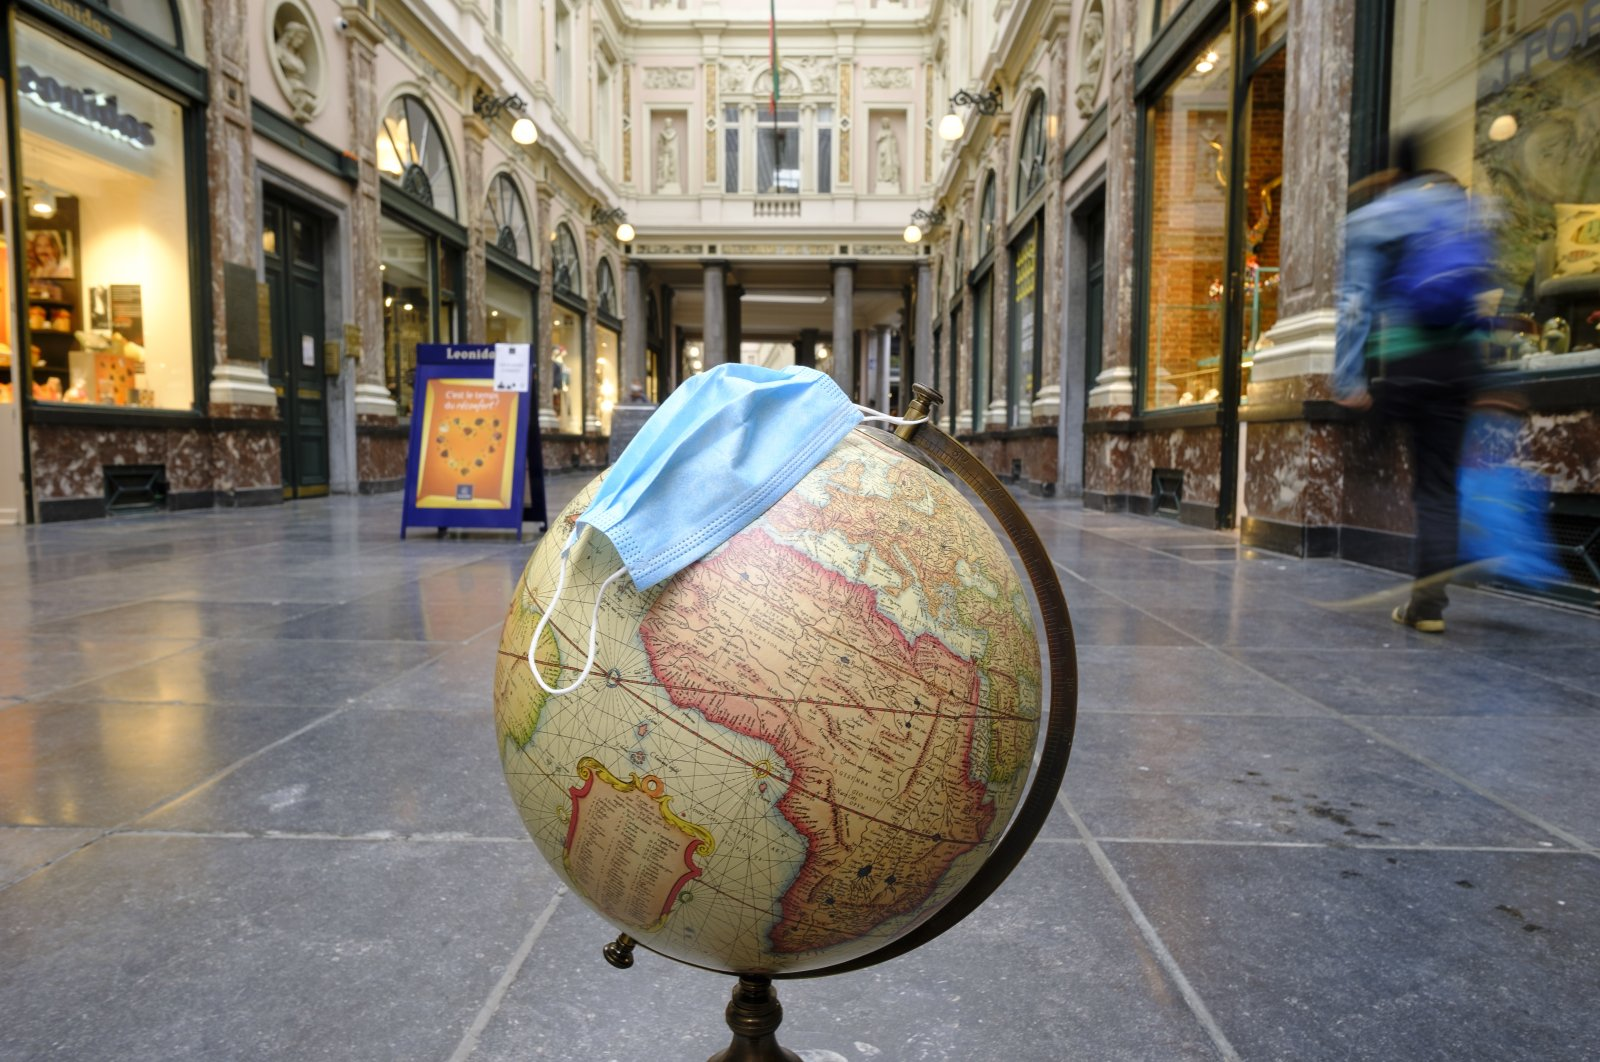 A globe with a surgical mask is seen on the floor of the Galeries Royales Saint-Hubert, Brussels, Belgium, Oct. 28, 2020. (Photo by Getty Images)